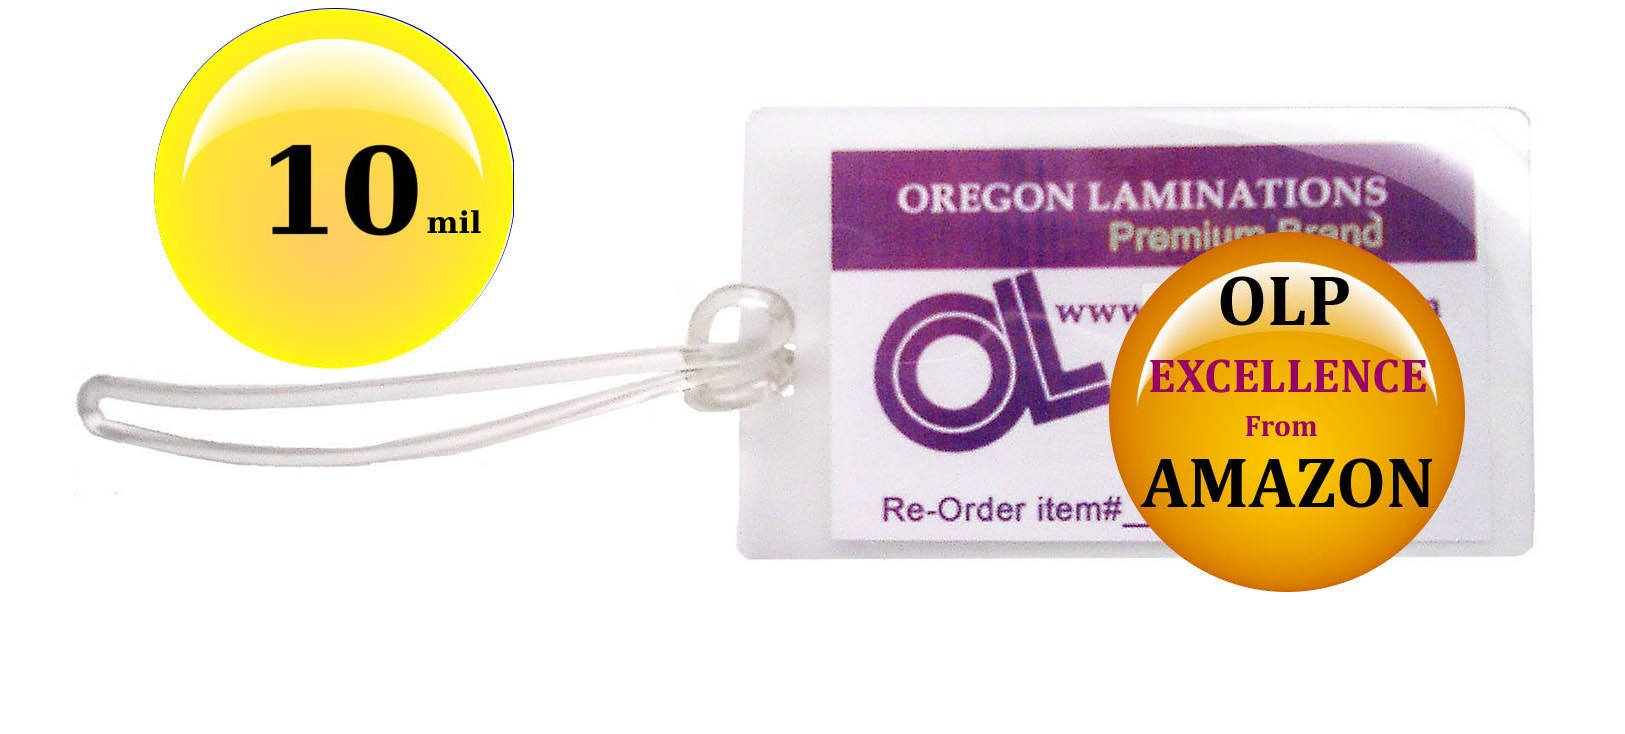 Qty 100 of Each, 10 Mil Luggage Tag Laminating Pouches & 6-inch Loops, 2-1/2 x 4-1/4 pre-Slotted by Oregon Lamination Premium